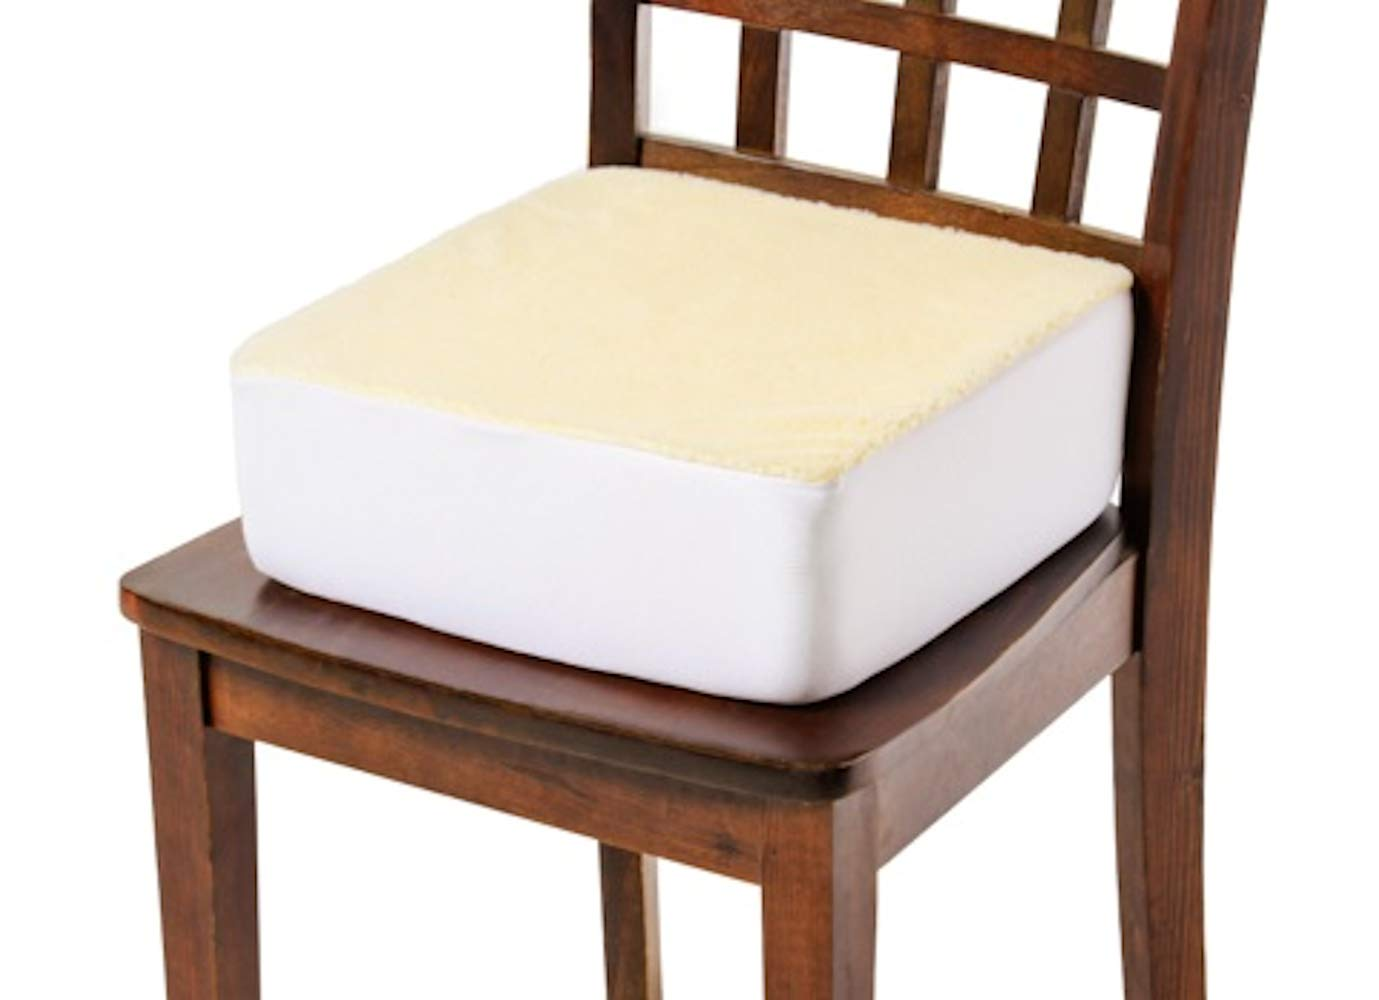 Active Care CAREACTIVE Rise with Ease Seat Cushion - Extra Thick Foam Chair Cushion - Thick Firm Chair Cushion - Cushion for Lift Chair - Extra Supportive Lift - 14 X 14 X 5 (Sherpa Cream)